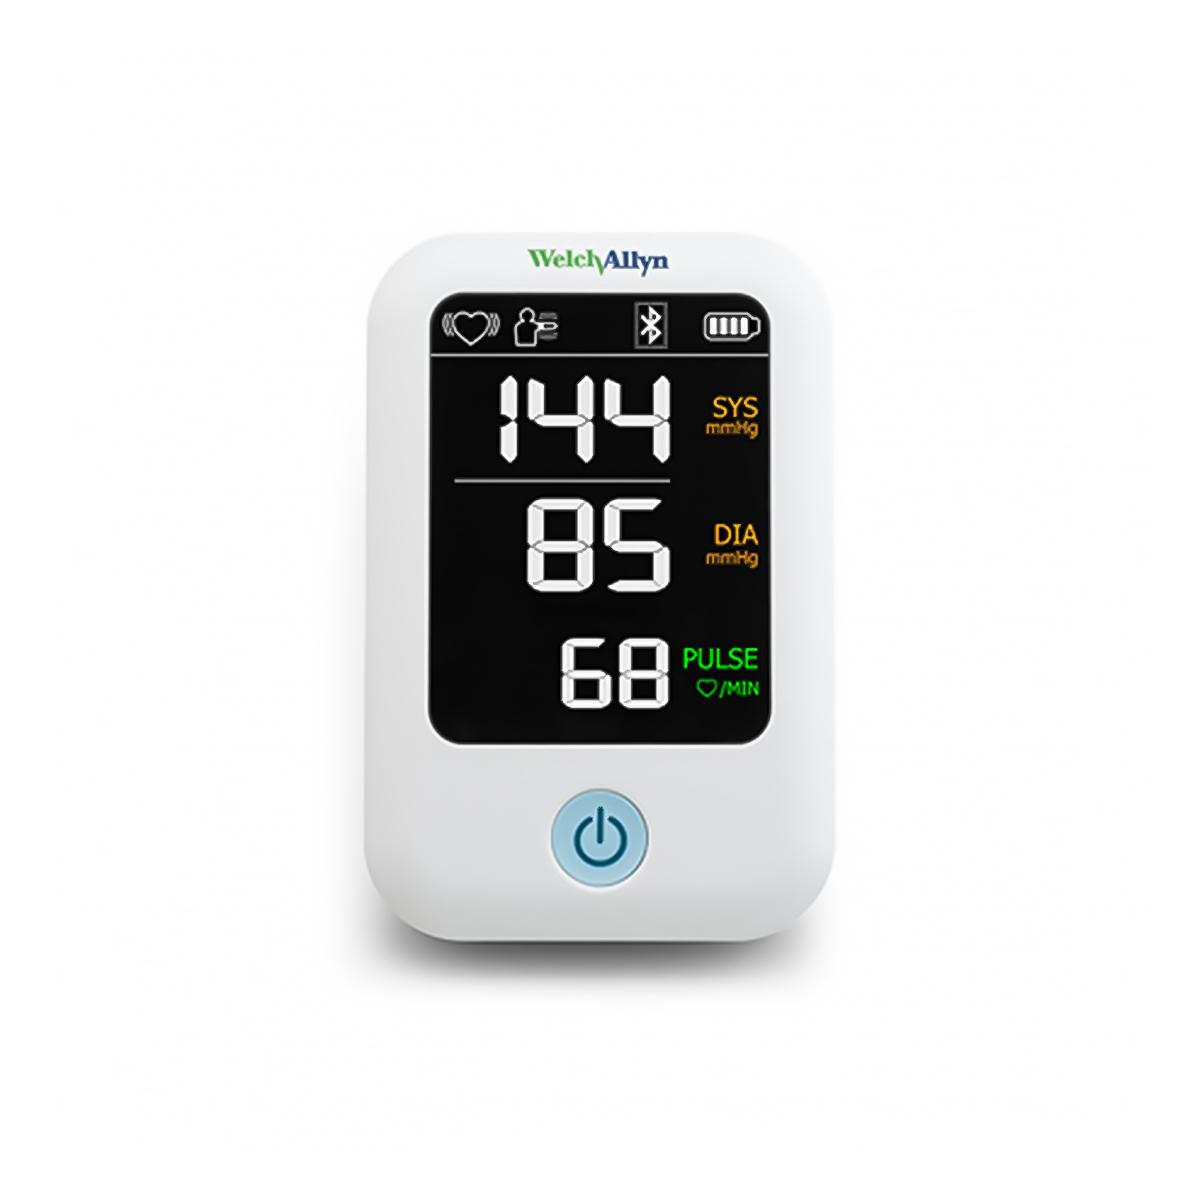 ProBP 2000 Digital Blood Pressure Device, front view